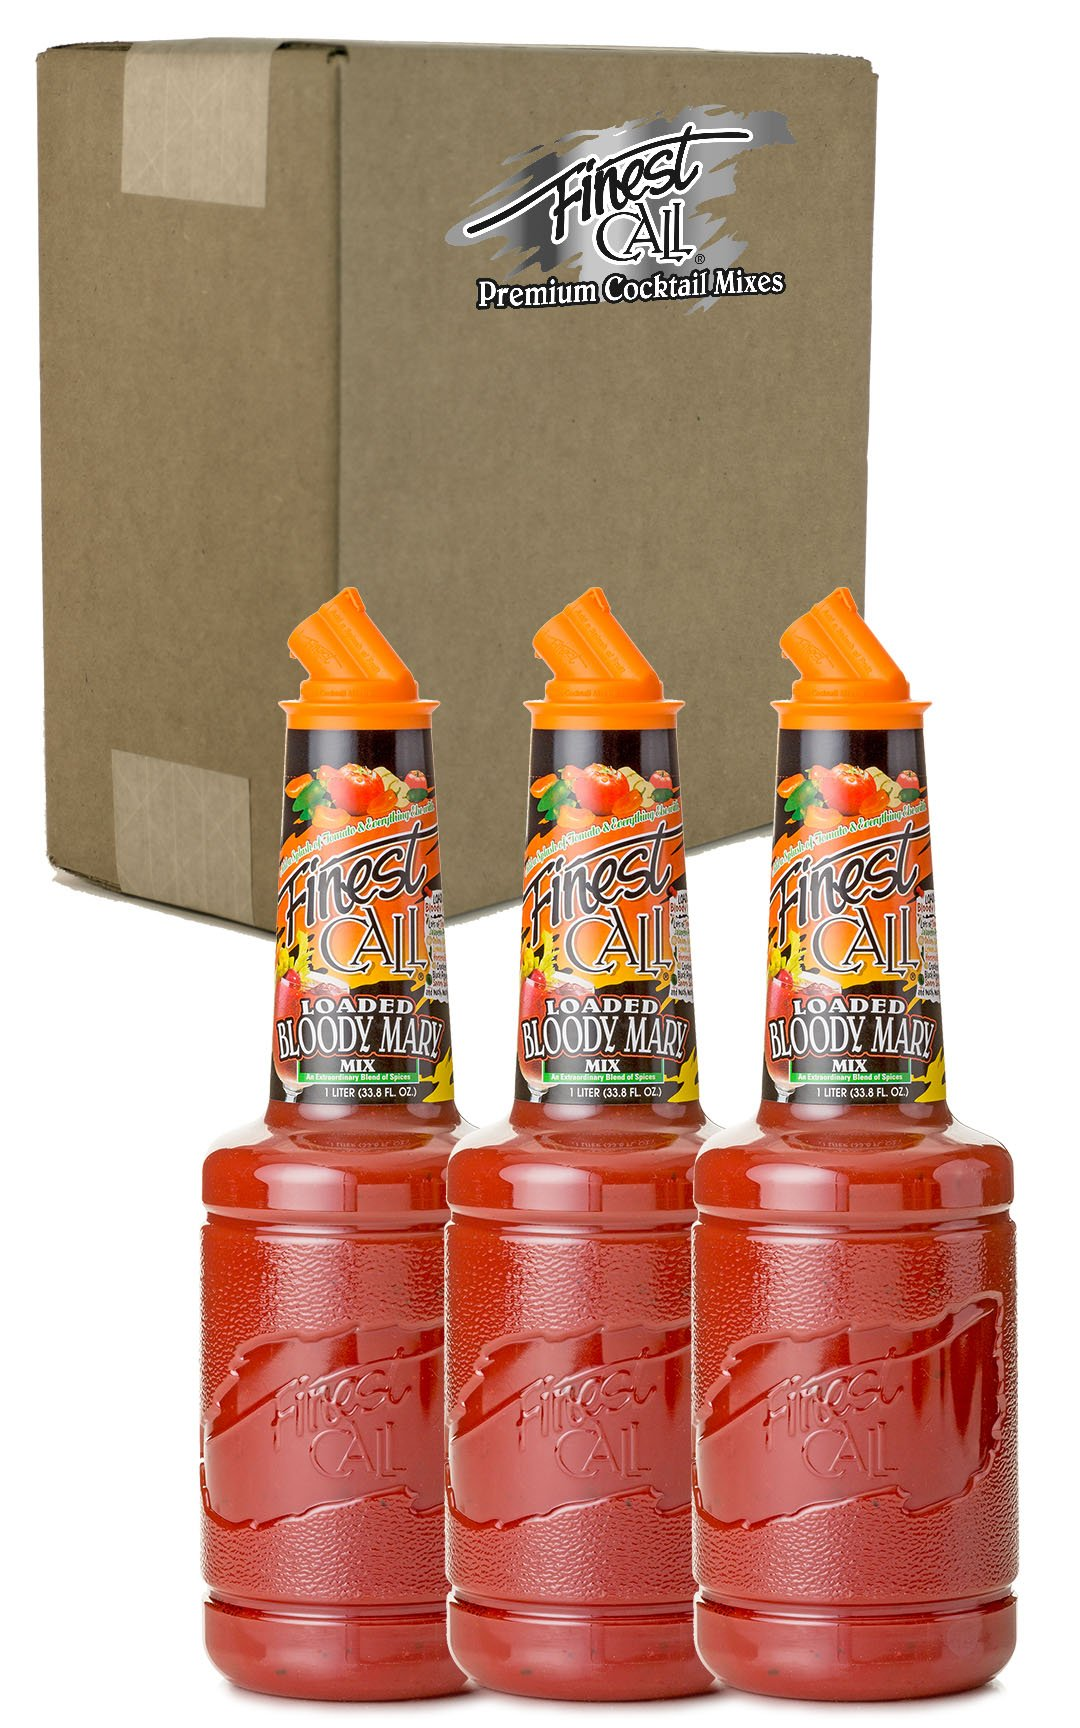 Finest Call Premium Loaded Bloody Mary Drink Mix, 1 Liter Bottle (33.8 Fl Oz), Pack of 3